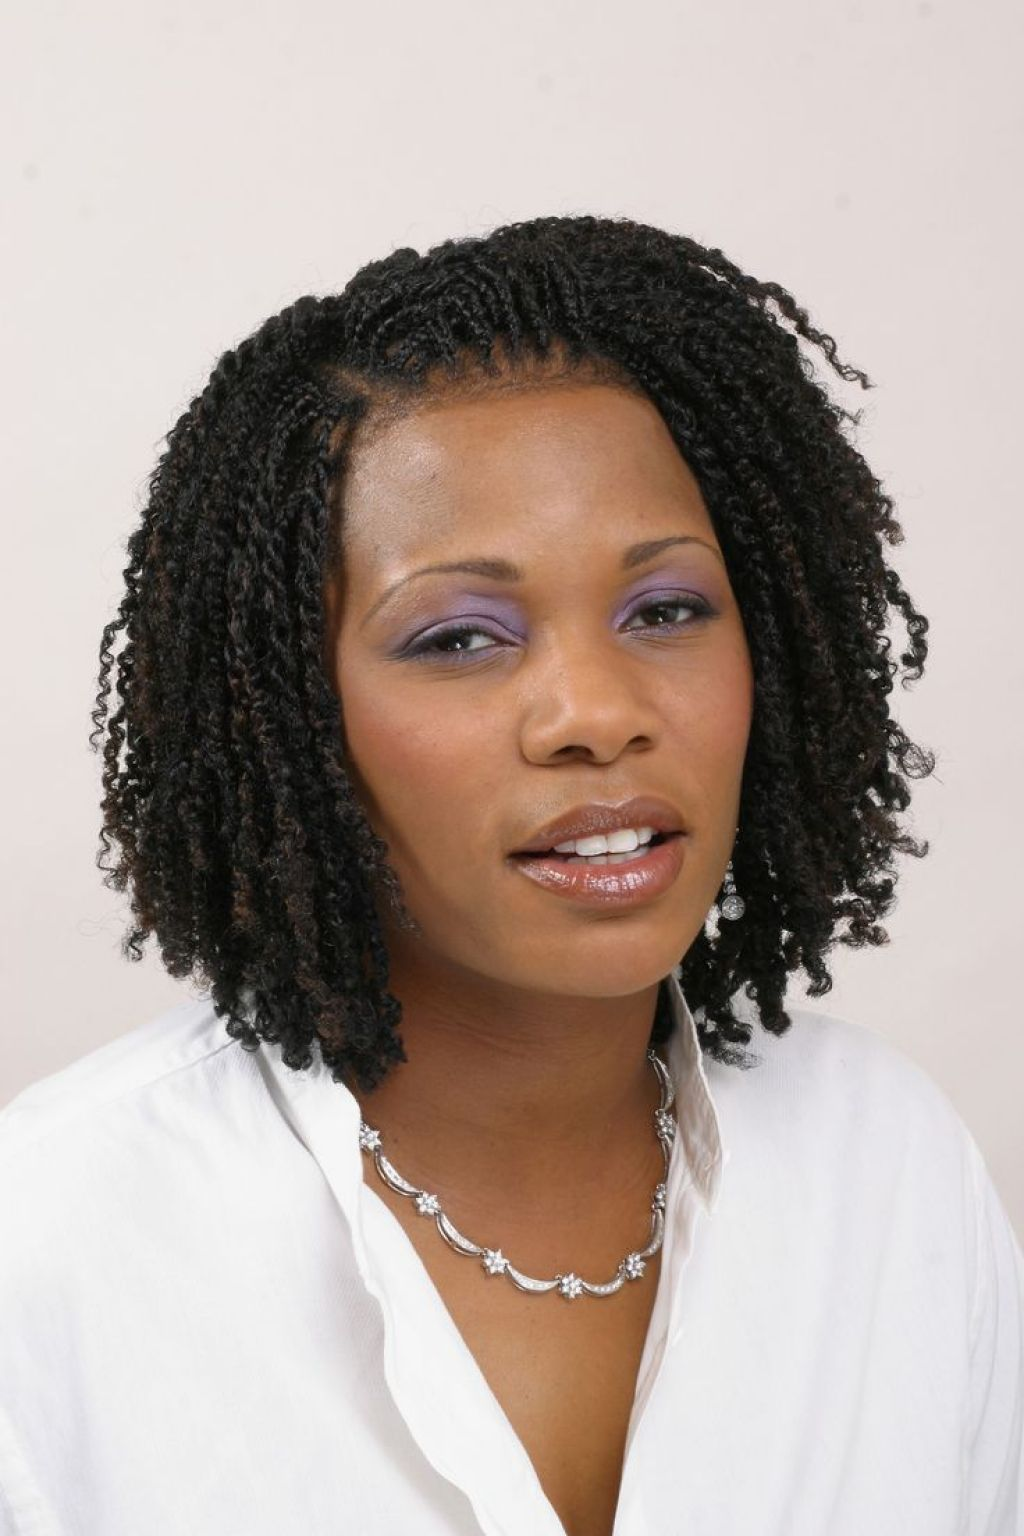 Groovy 1000 Images About Kinky Twists On Pinterest Short Hairstyles For Black Women Fulllsitofus